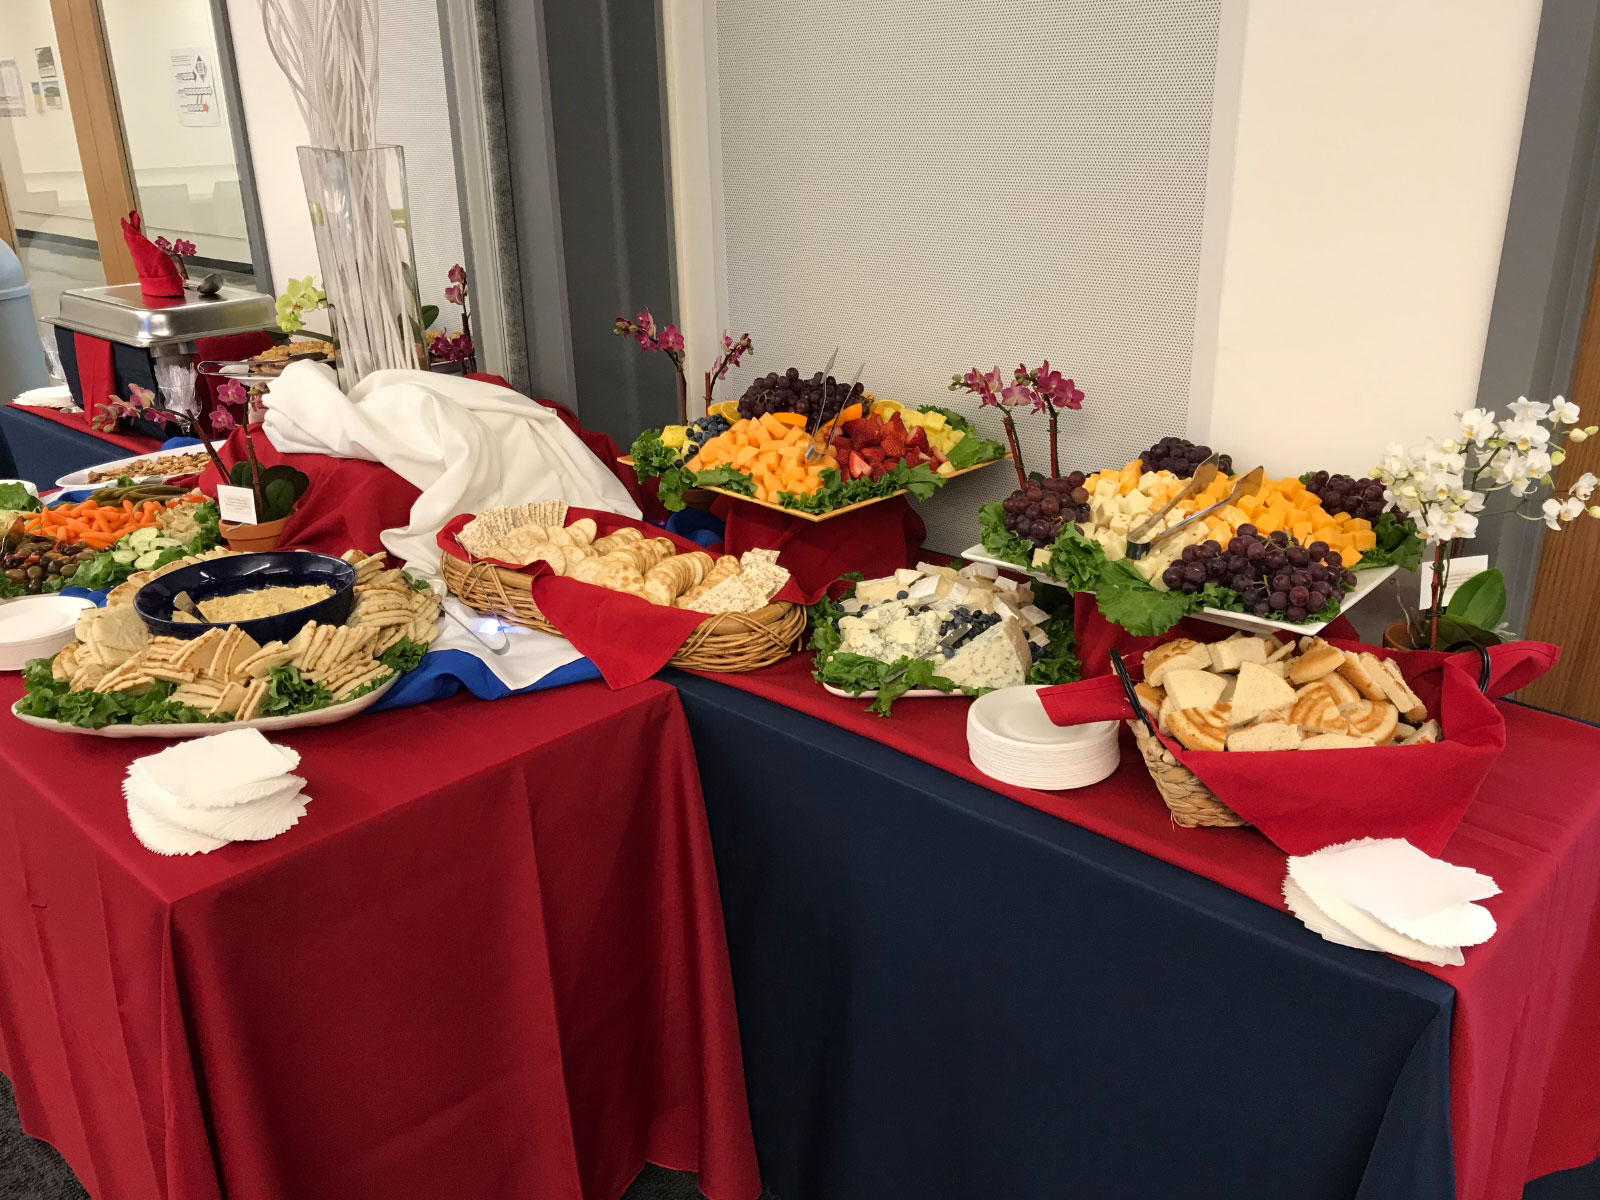 Catered food of fruit, vegetables, crackers, pita bread and dip at the Oregon City campus